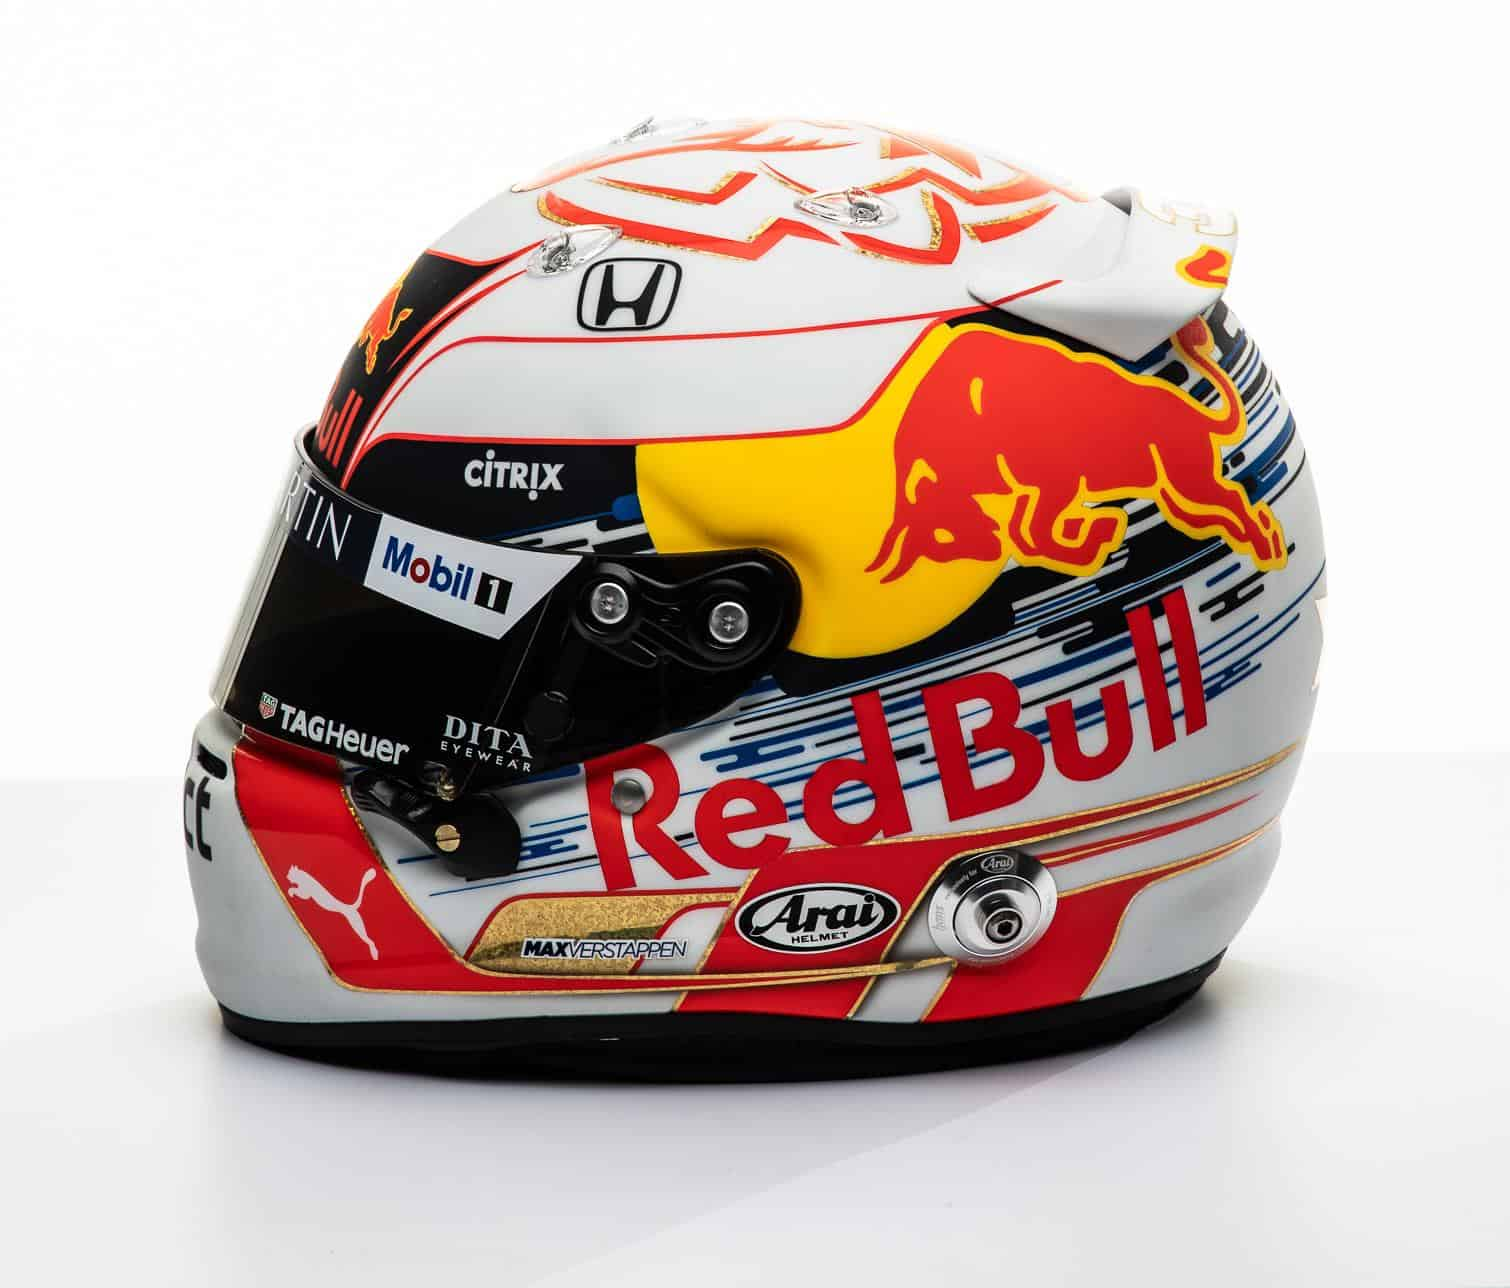 2019 F1 Max Verstappen Red Bull Honda helmet left side Photo Red Bull Edited by MAXF1net